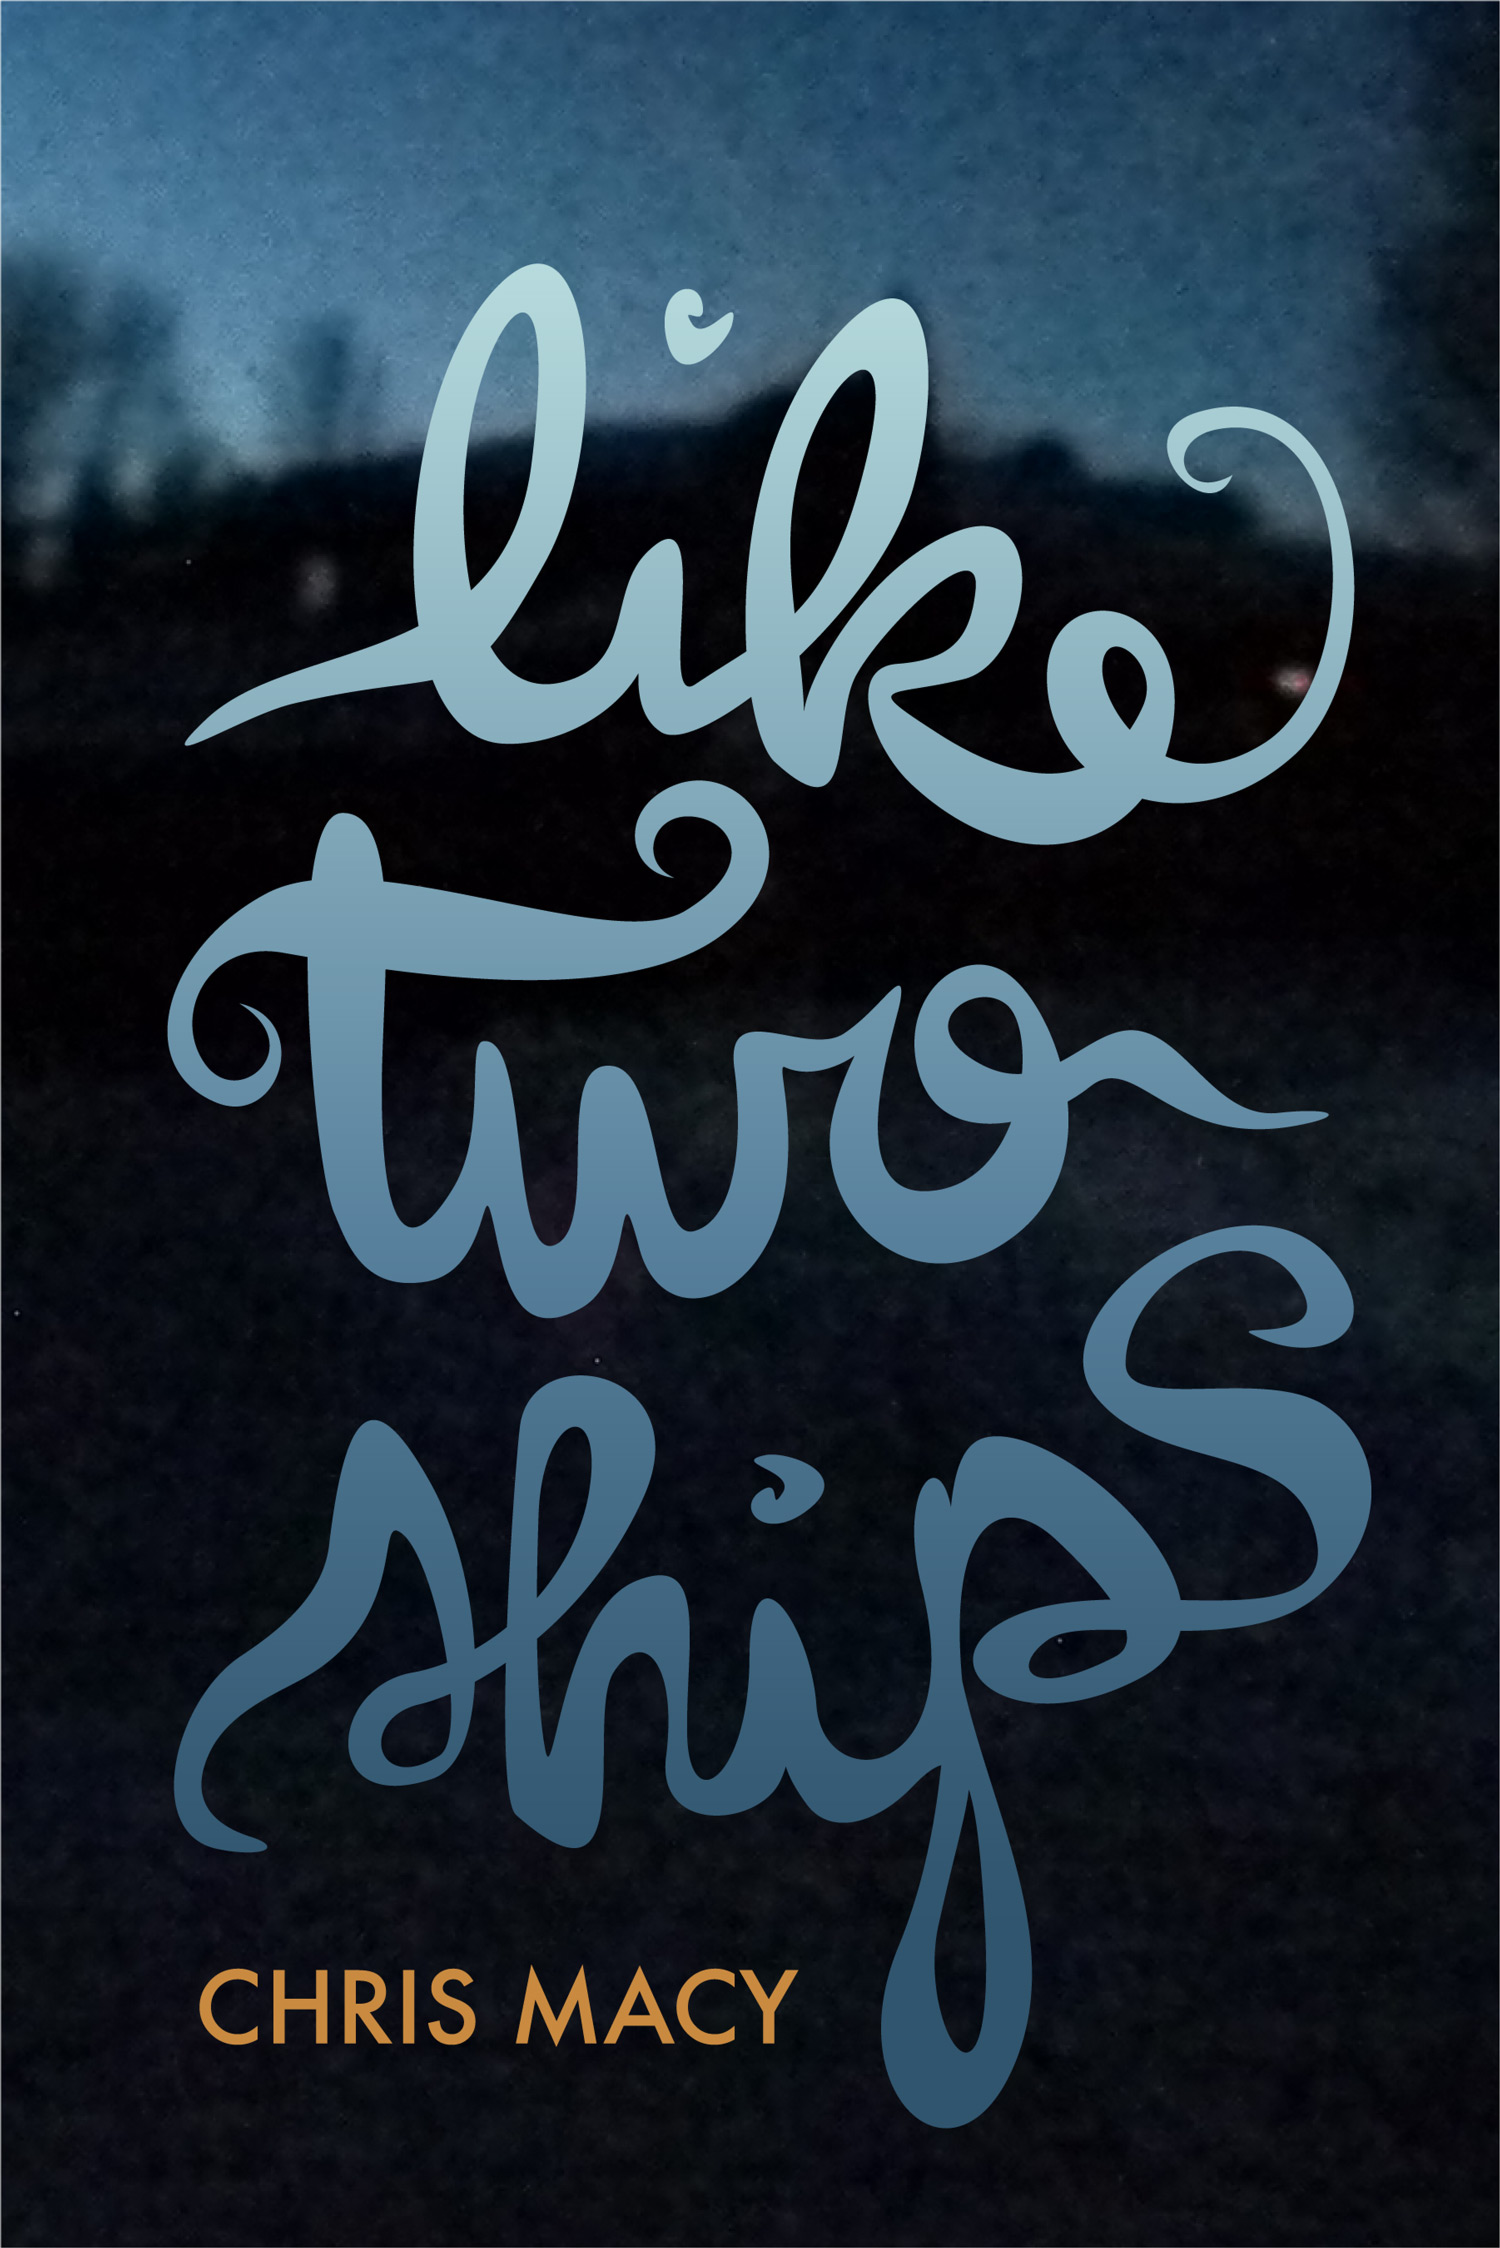 Like two ships text